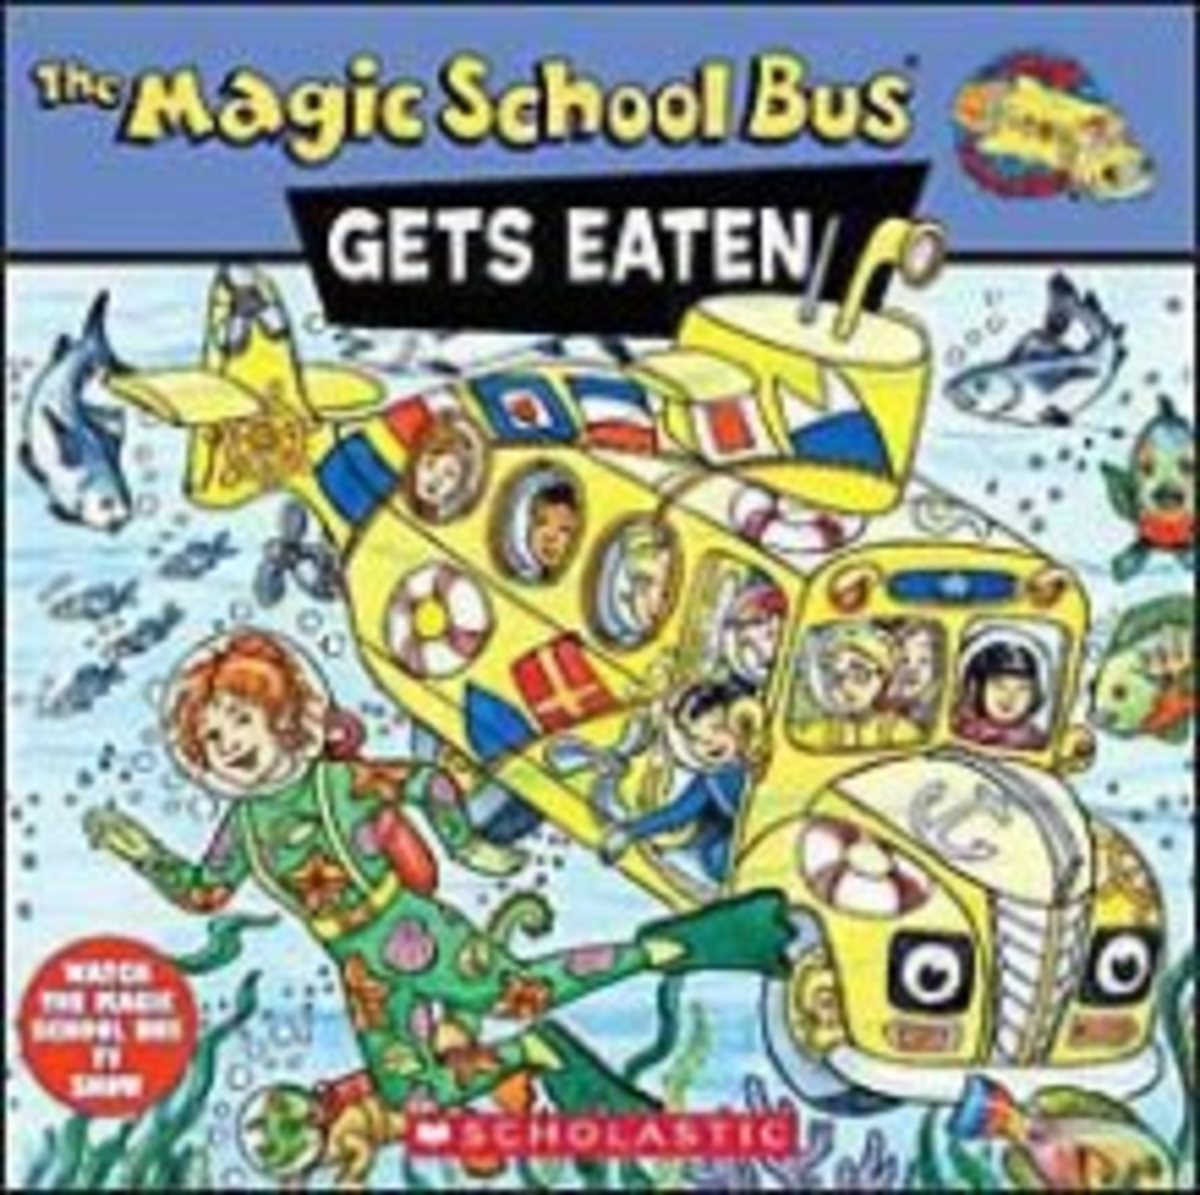 The Magic School Bus Gets Eaten: A Book About Food Chains by Pat Relf